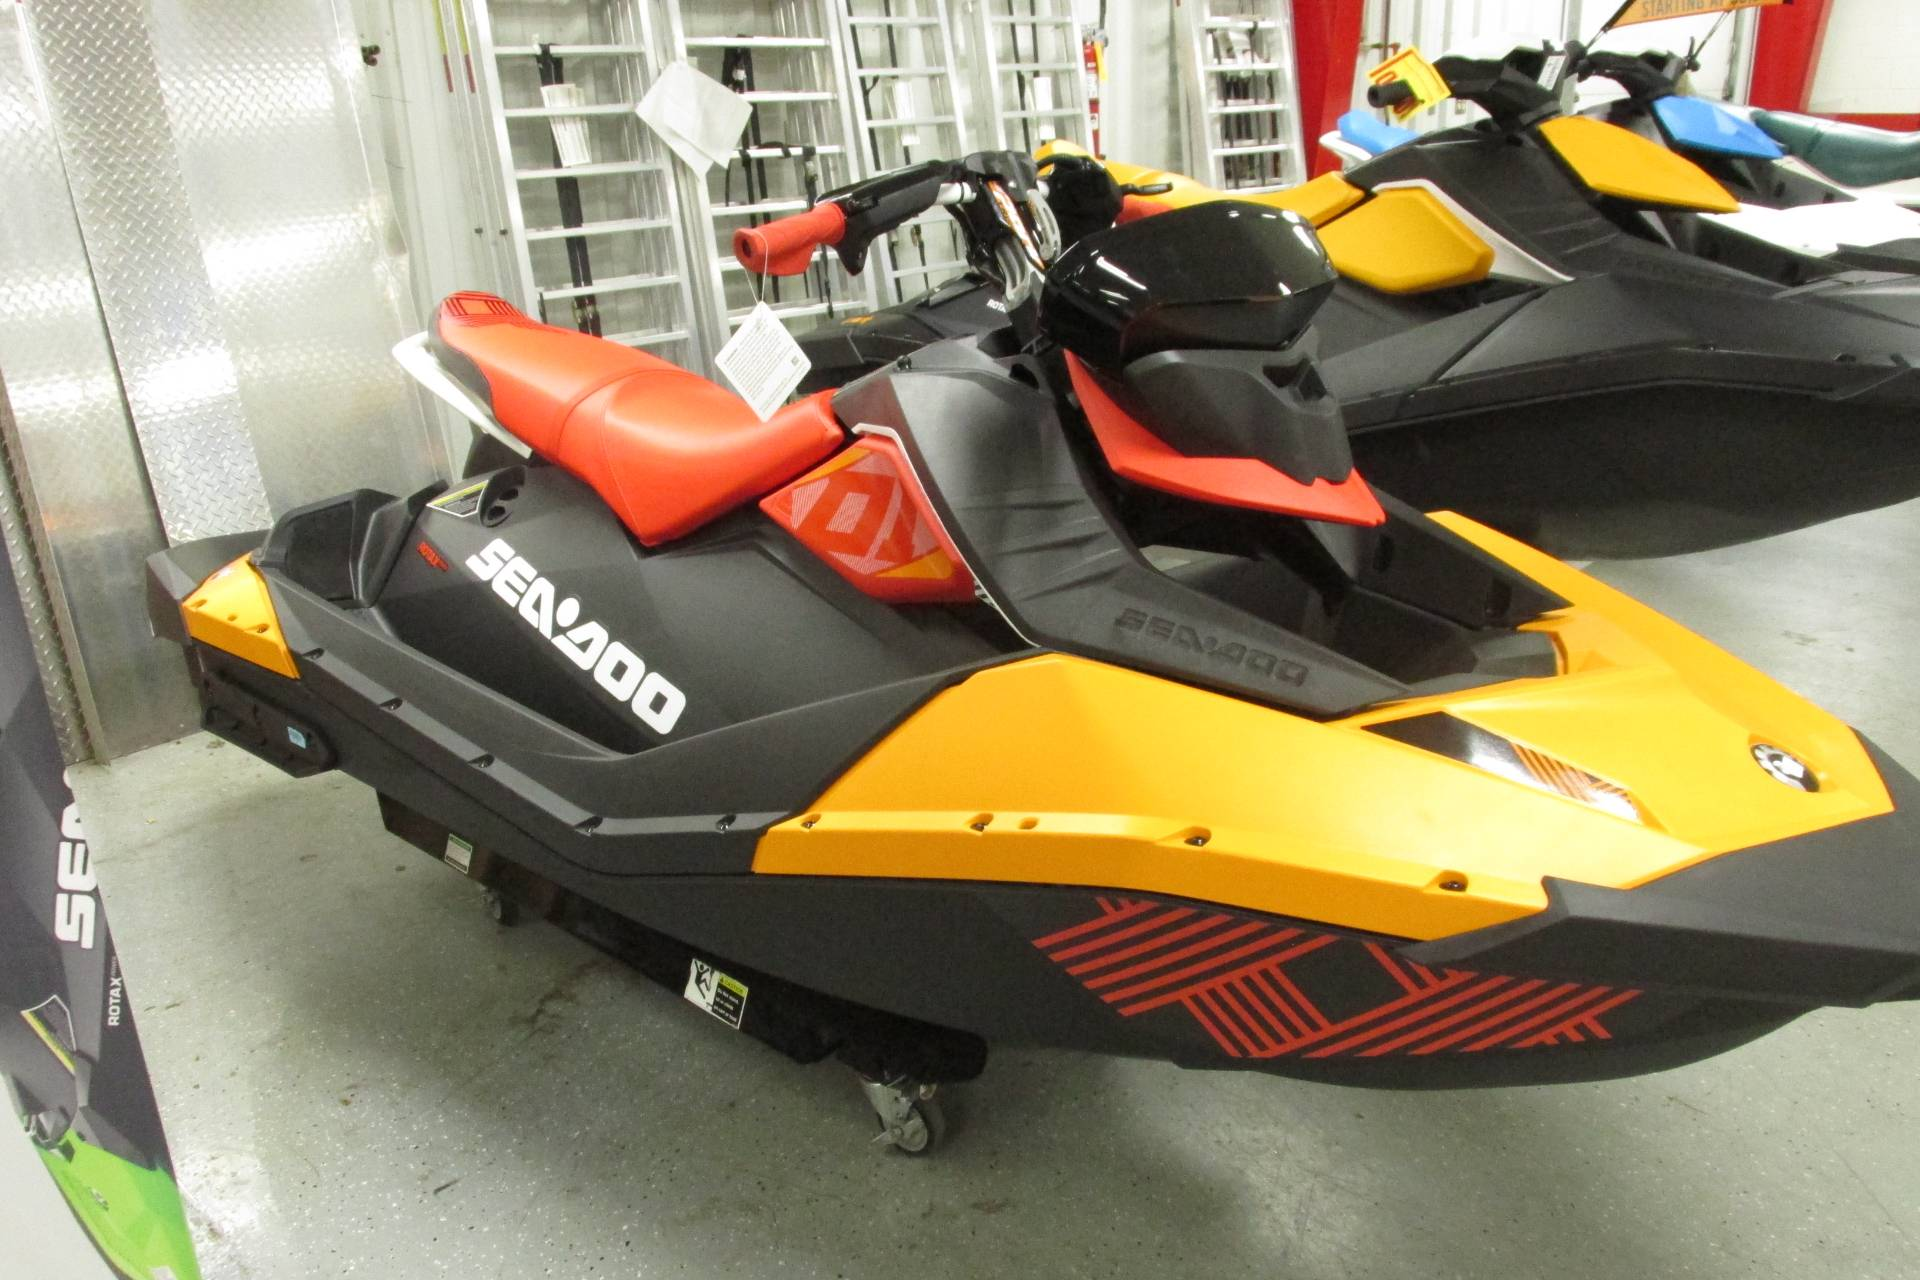 2019 Sea-Doo SPARK TRIXX 3 UP WITH SOUND in Springfield, Ohio - Photo 4